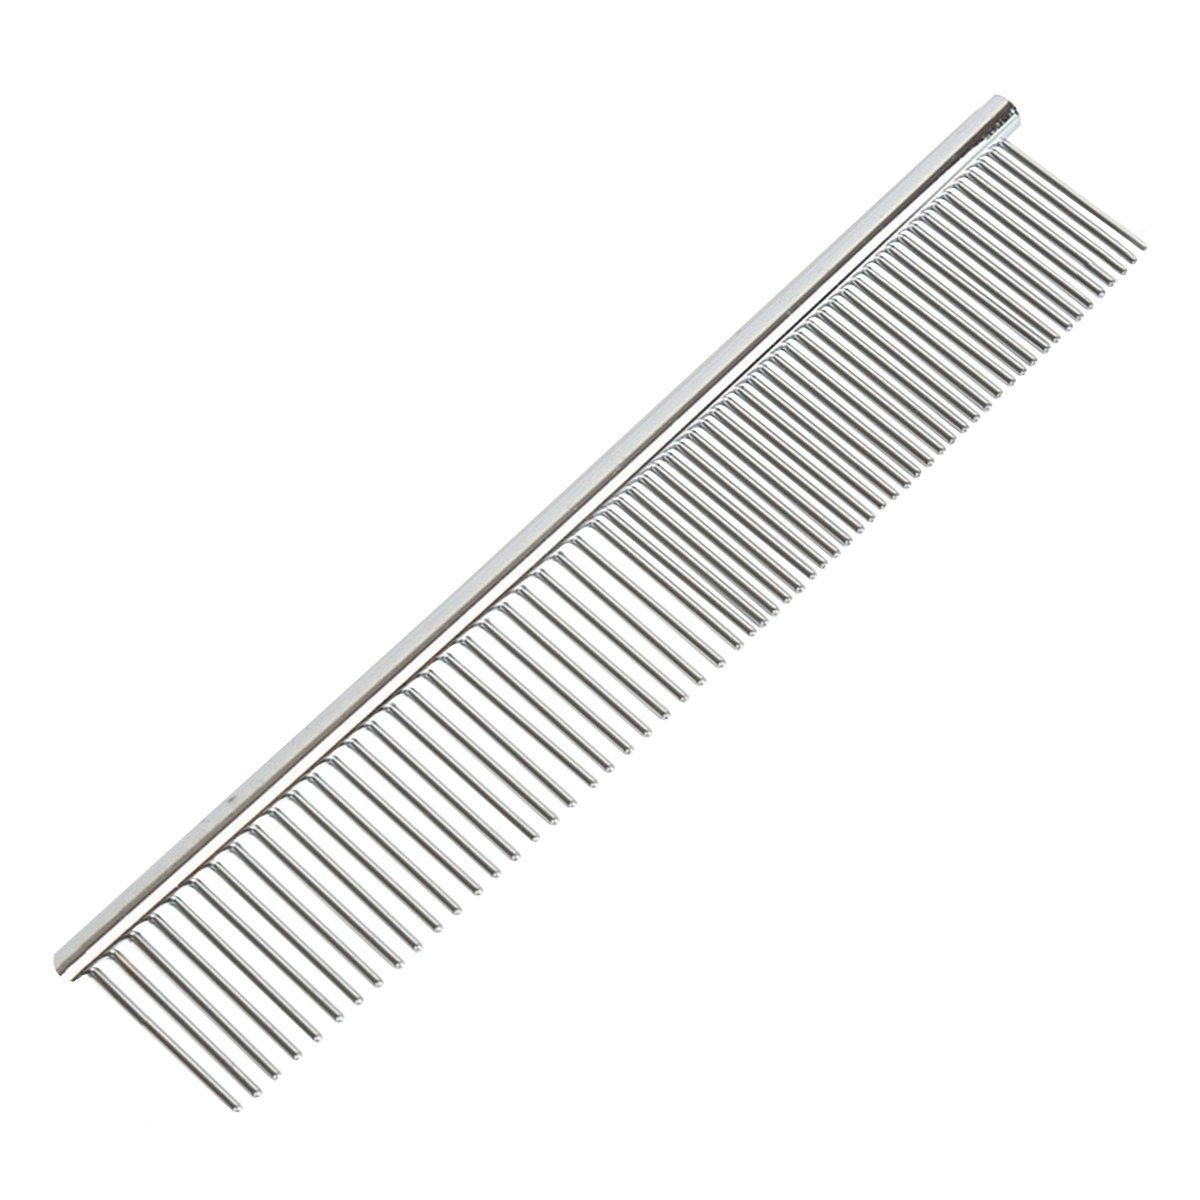 Stainless Steel Dog & Cat Shedding Comb and Grooming Comb with Different Spaced Rounded Teeth,Wide Trimmer Comb,Pet's Lightweight Comfortable Grooming Comb